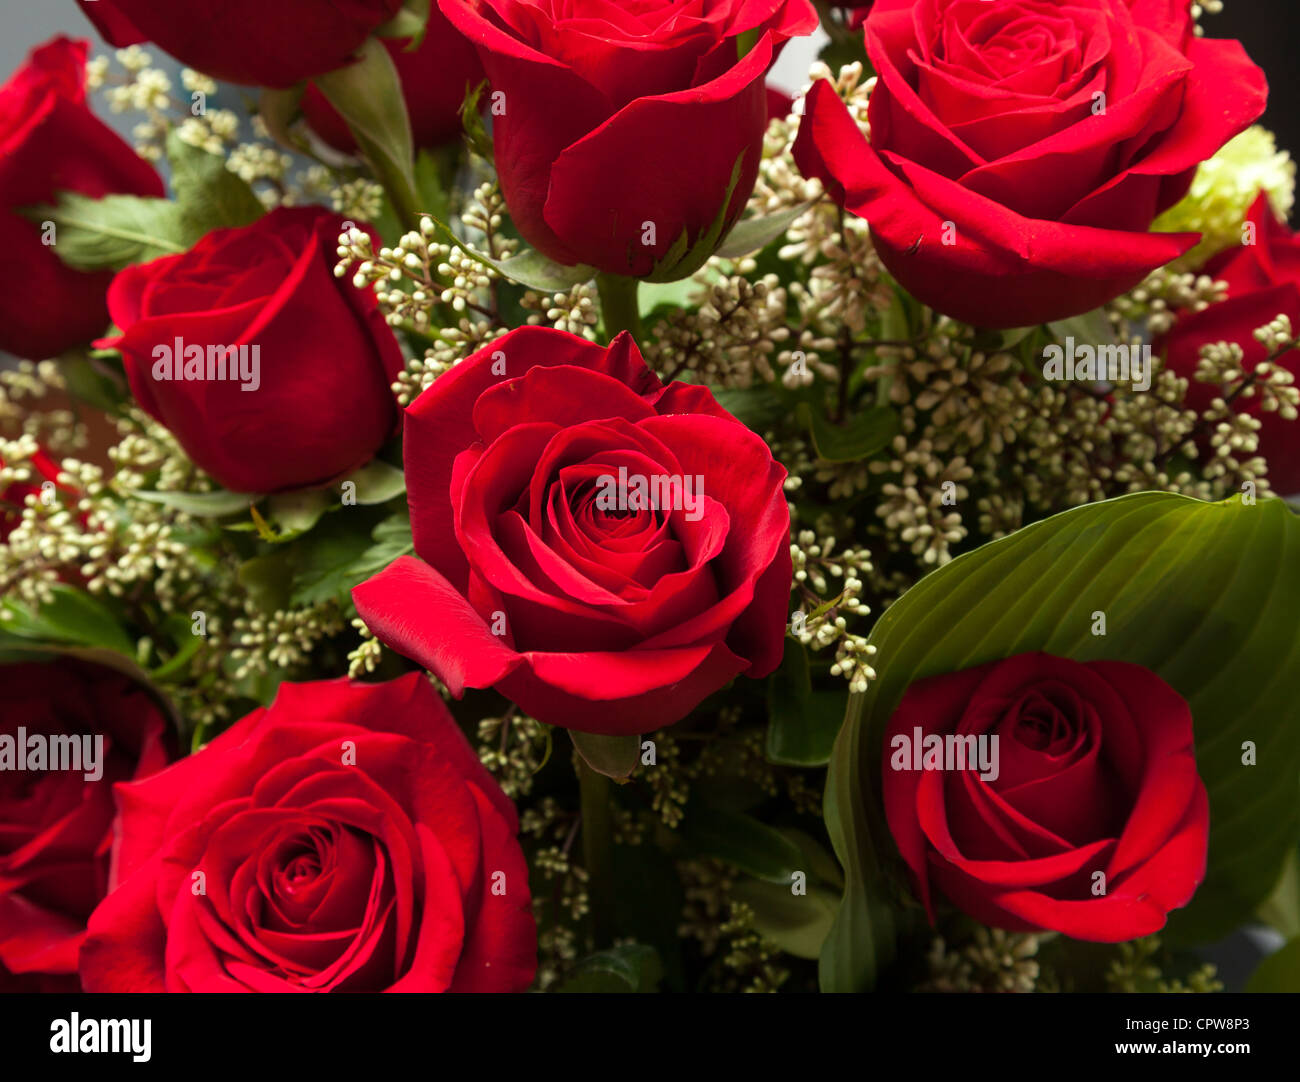 Bunch of Red roses in a valentines day bouquet close up on the flowers - Stock Image